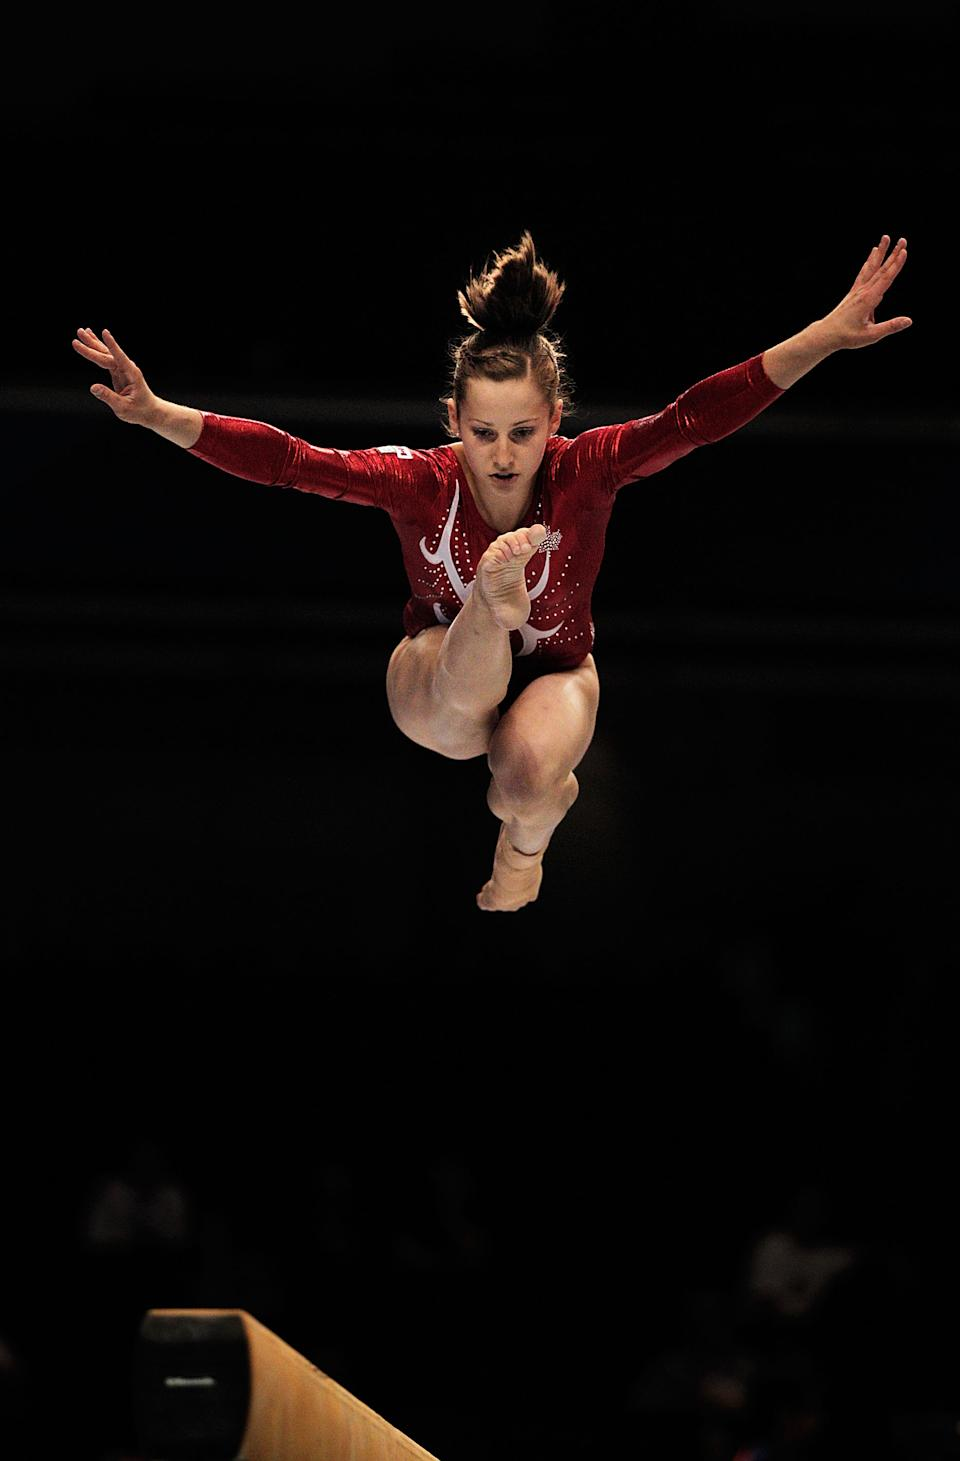 Canada's 17-year-old Dominique Pegg performs on the Beam aparatus in the Women's Qualification during the day one of the Artistic Gymnastics World Championships Tokyo 2011 at Tokyo Metropolitan Gymnasium on October 7, 2011 in Tokyo, Japan. (Adam Pretty/Getty Images)